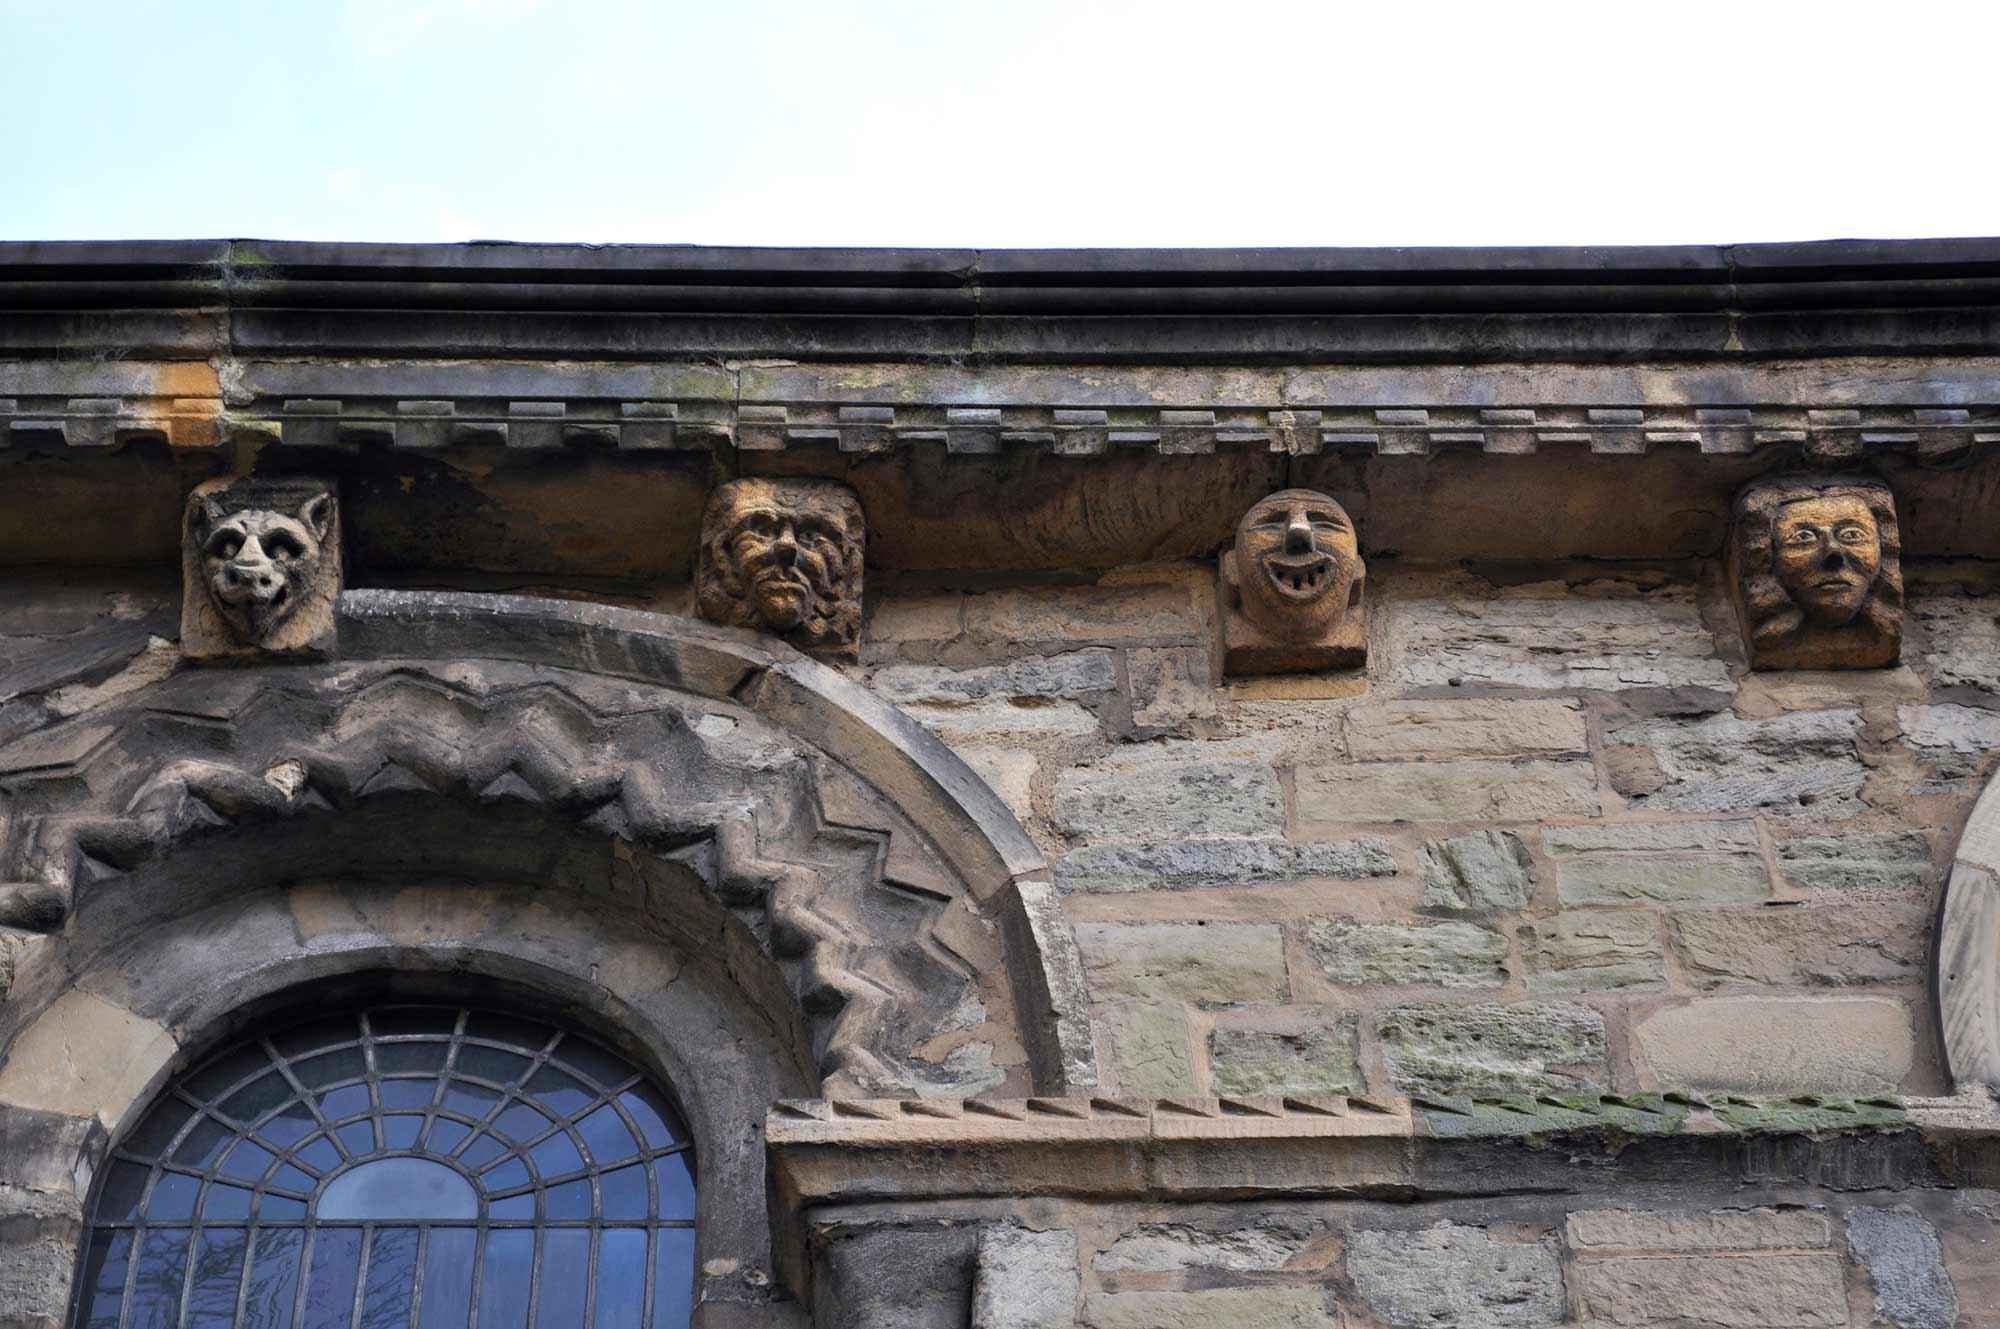 Stone carvings on the church exterior -